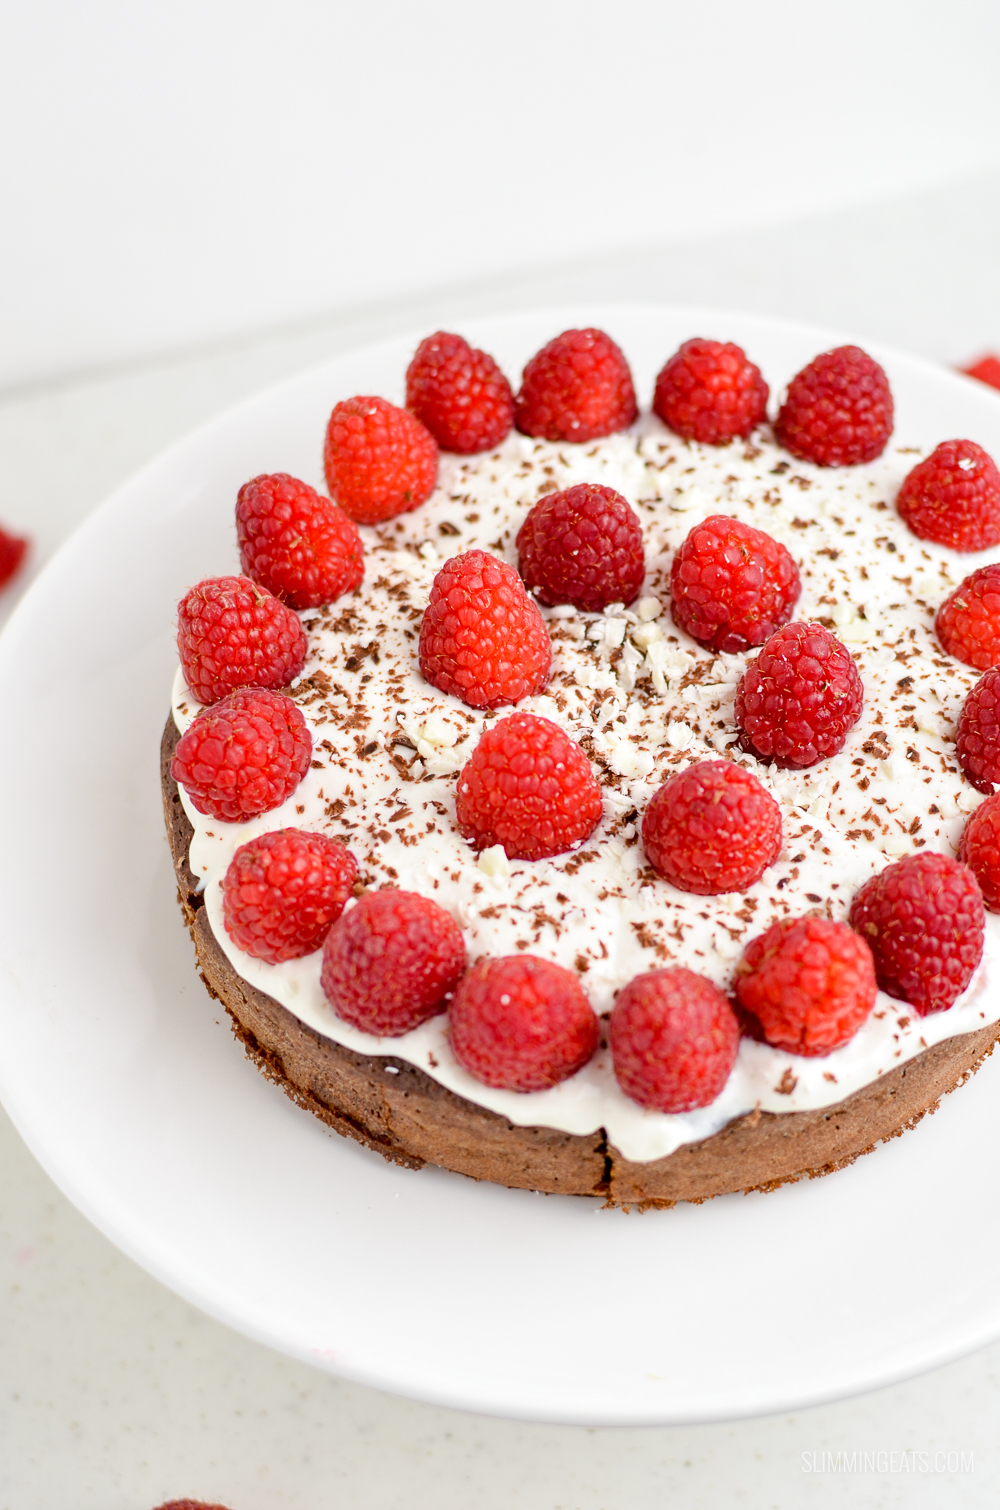 top view of raspberry topped chocolate scan bran cake on white cake stand